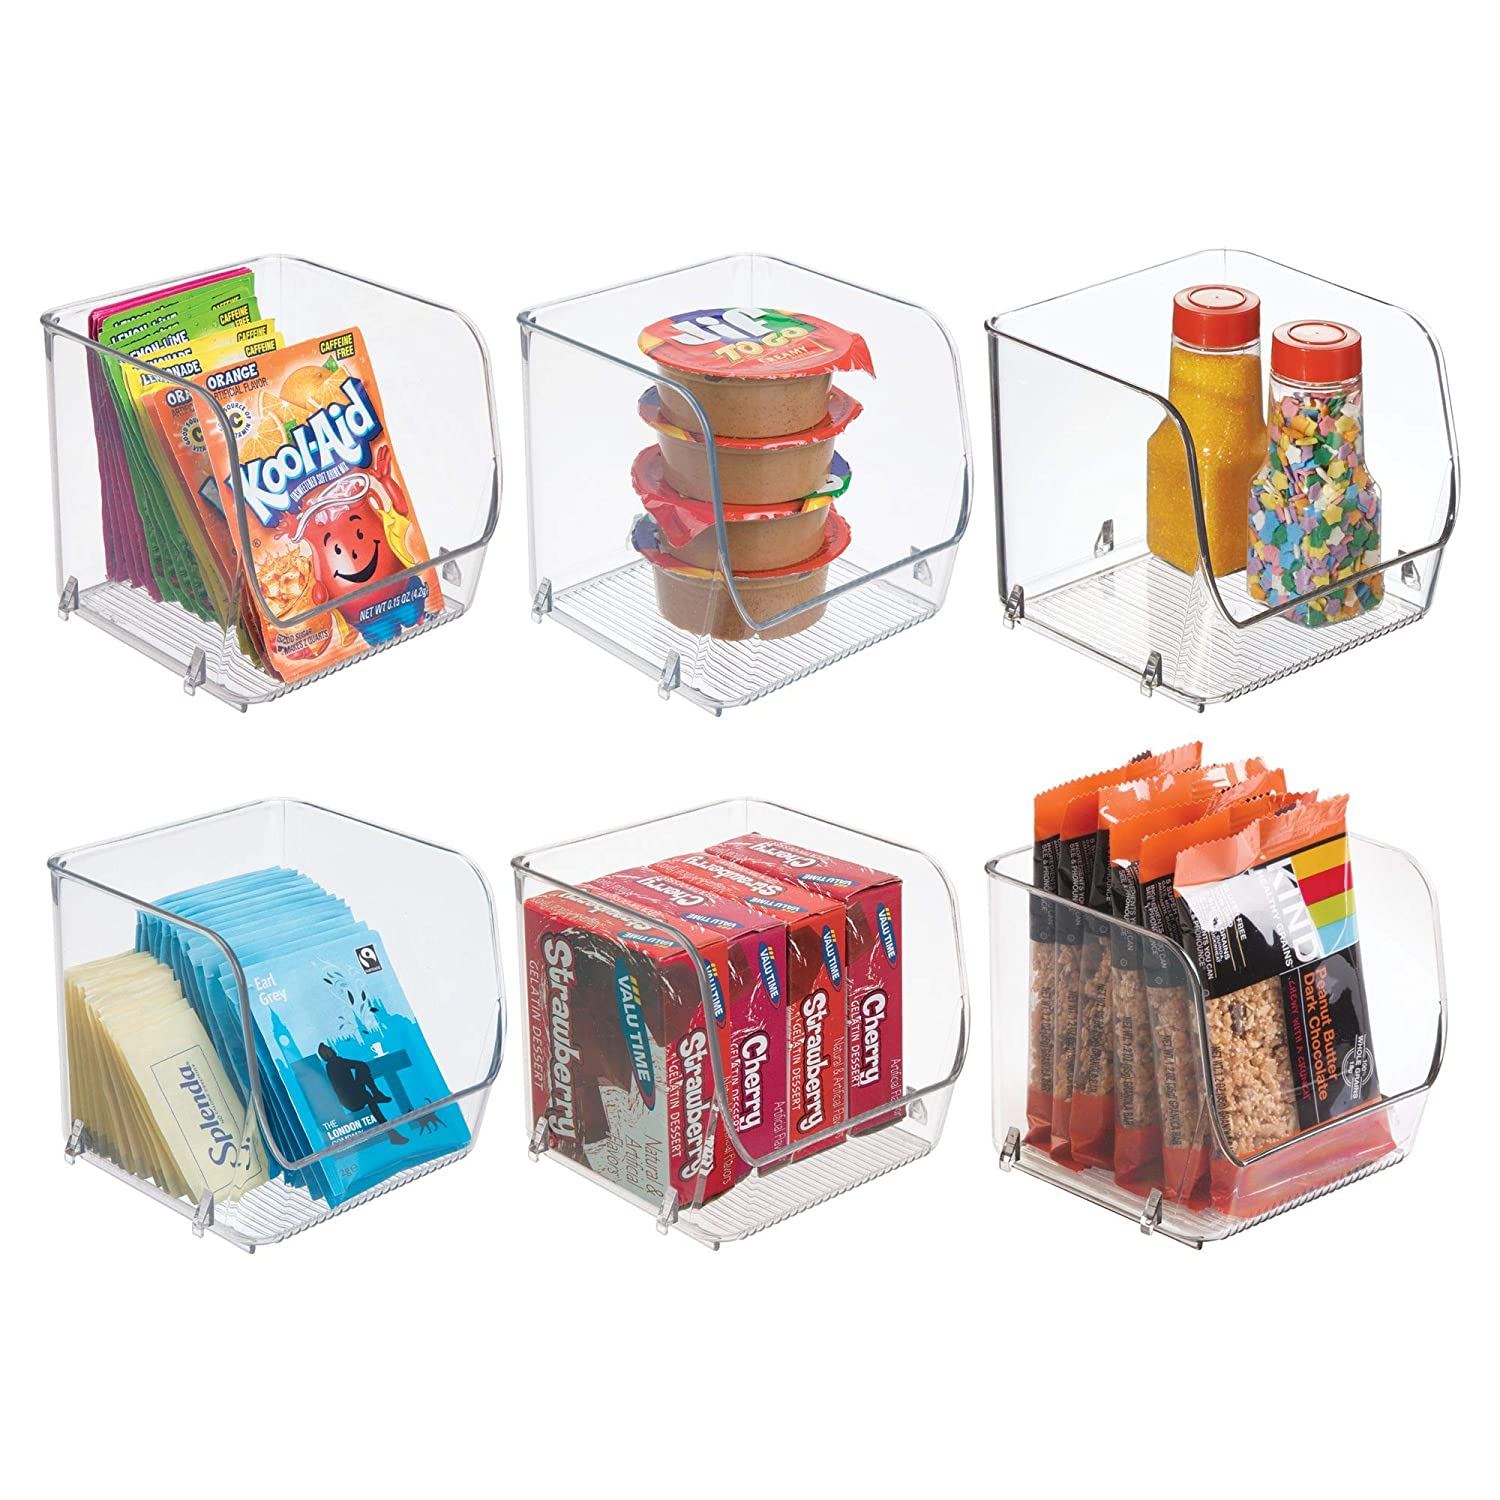 "Household Stackable Plastic Food Storage Organizer Bin Basket with Wide Open Front for Kitchen Cabinets, Pantry, Offices, Closets, Bedrooms, Bathrooms - Cube, Small - 4.5"" Wide, 6 Pack - Clear"